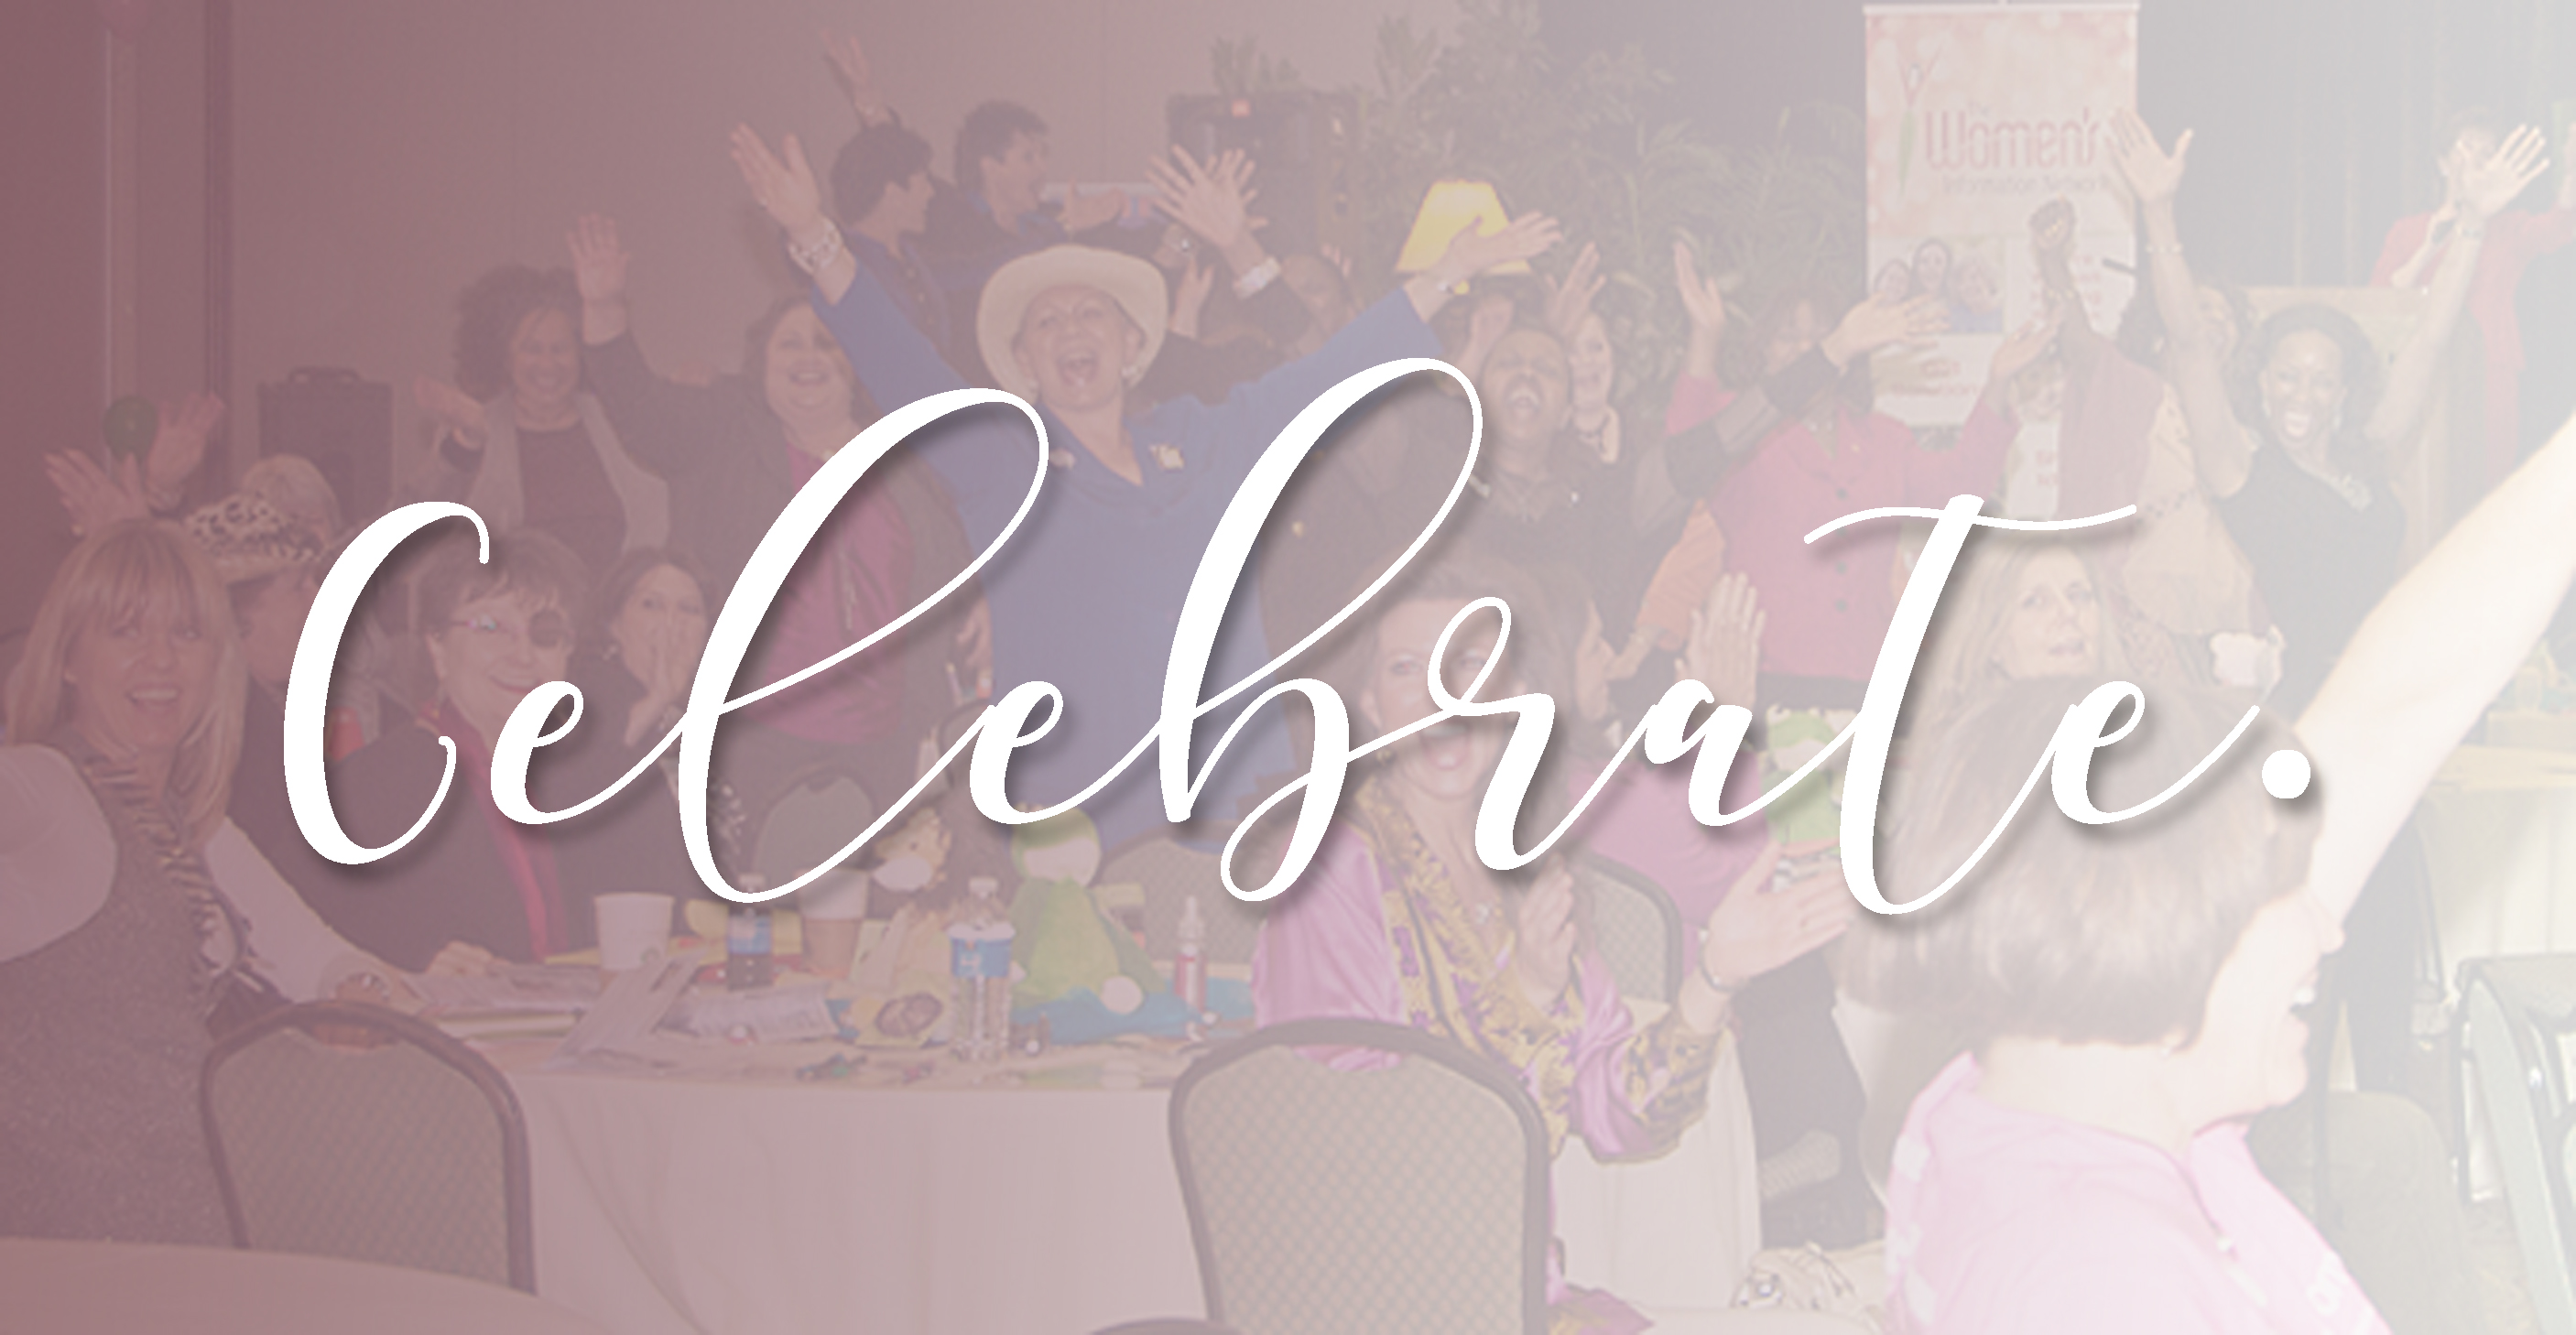 Celebrate! WIN | The Women's Information Network